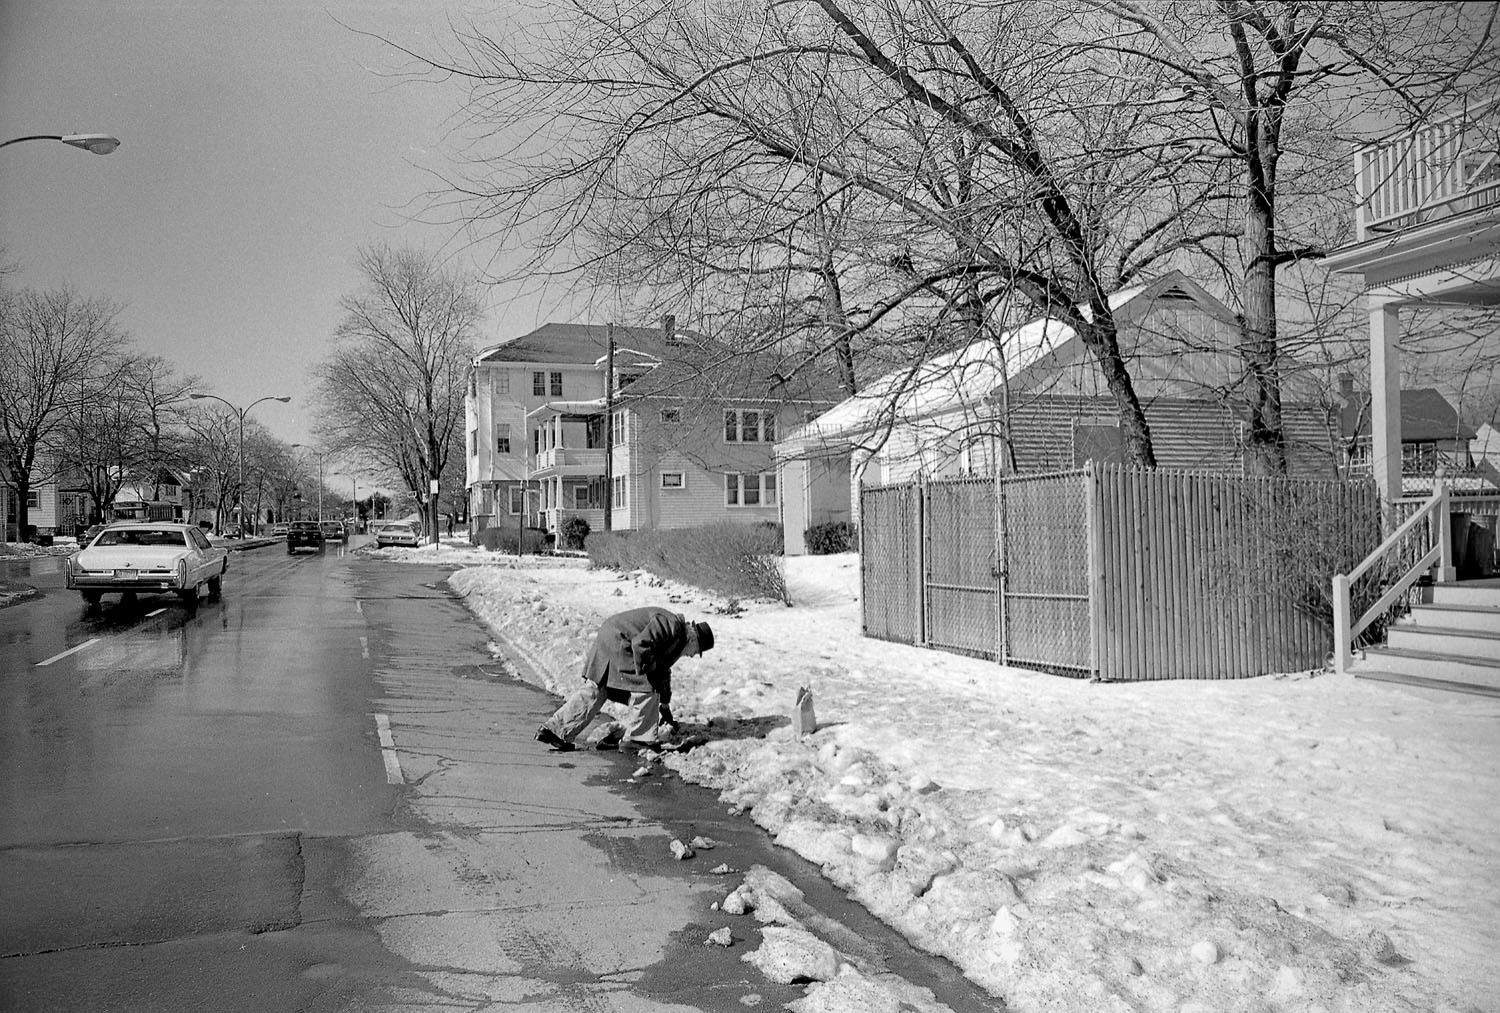 Man Climbing Snow Bank